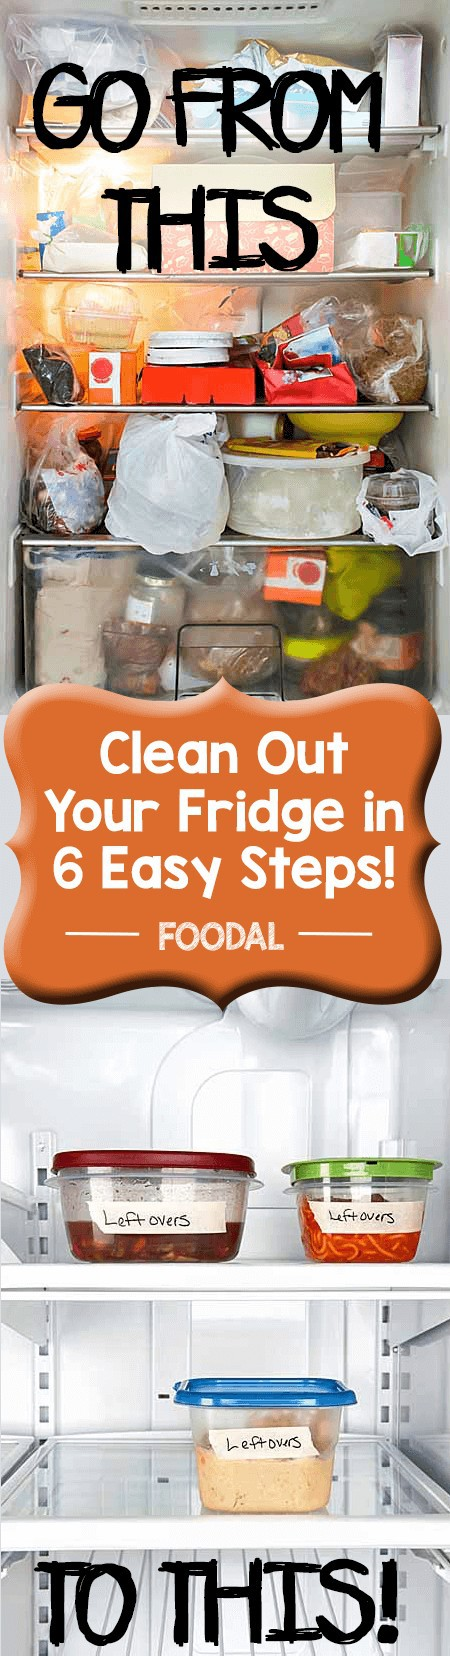 Do you have a refrigerator or freezer that's completely out of hand? Trying to figure out how to get rid of that old and outdated food and keep everything organized? Read these tips to help you out.